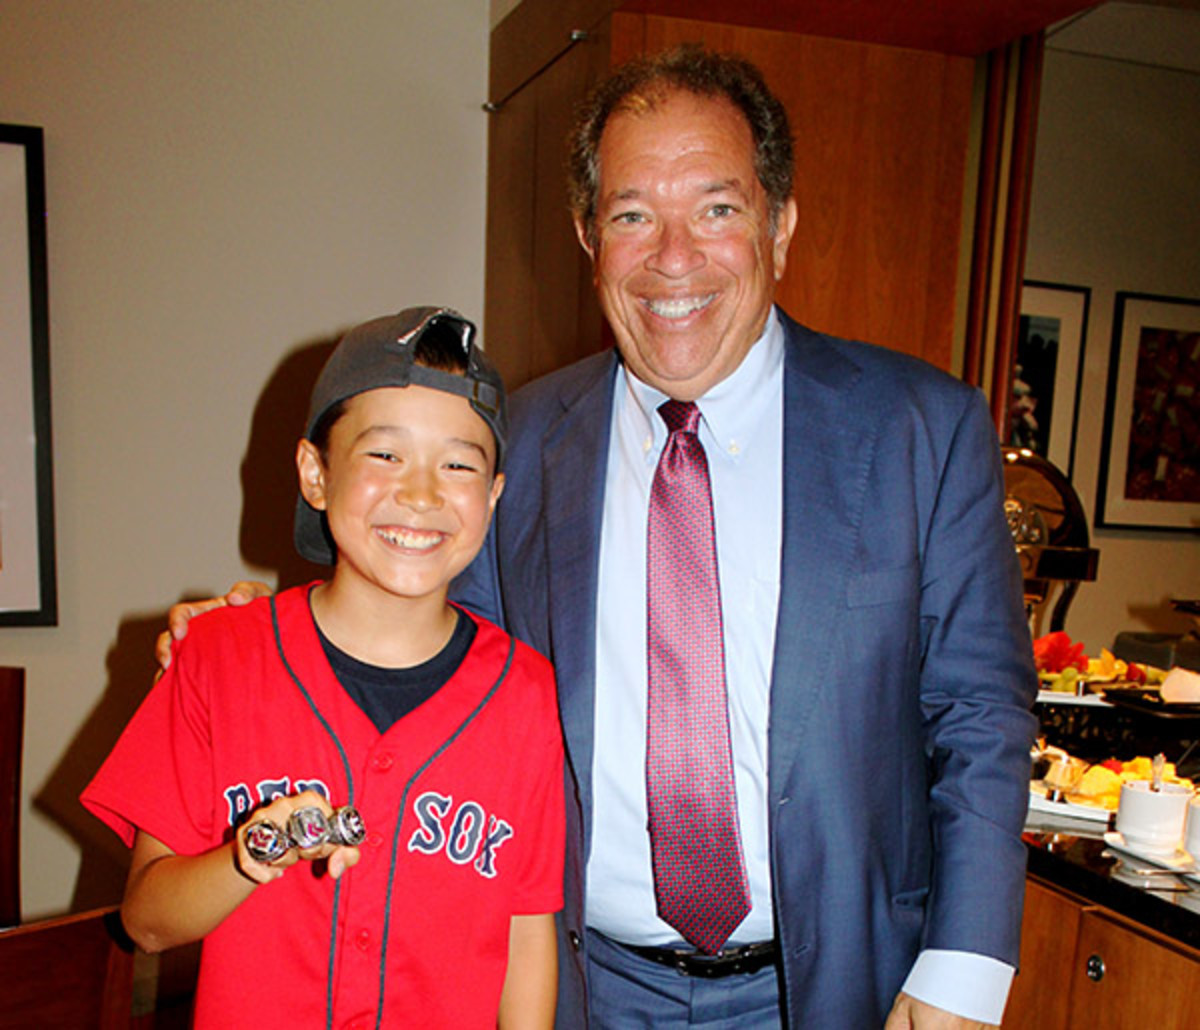 kid reporter first pitch fenway park boston red sox